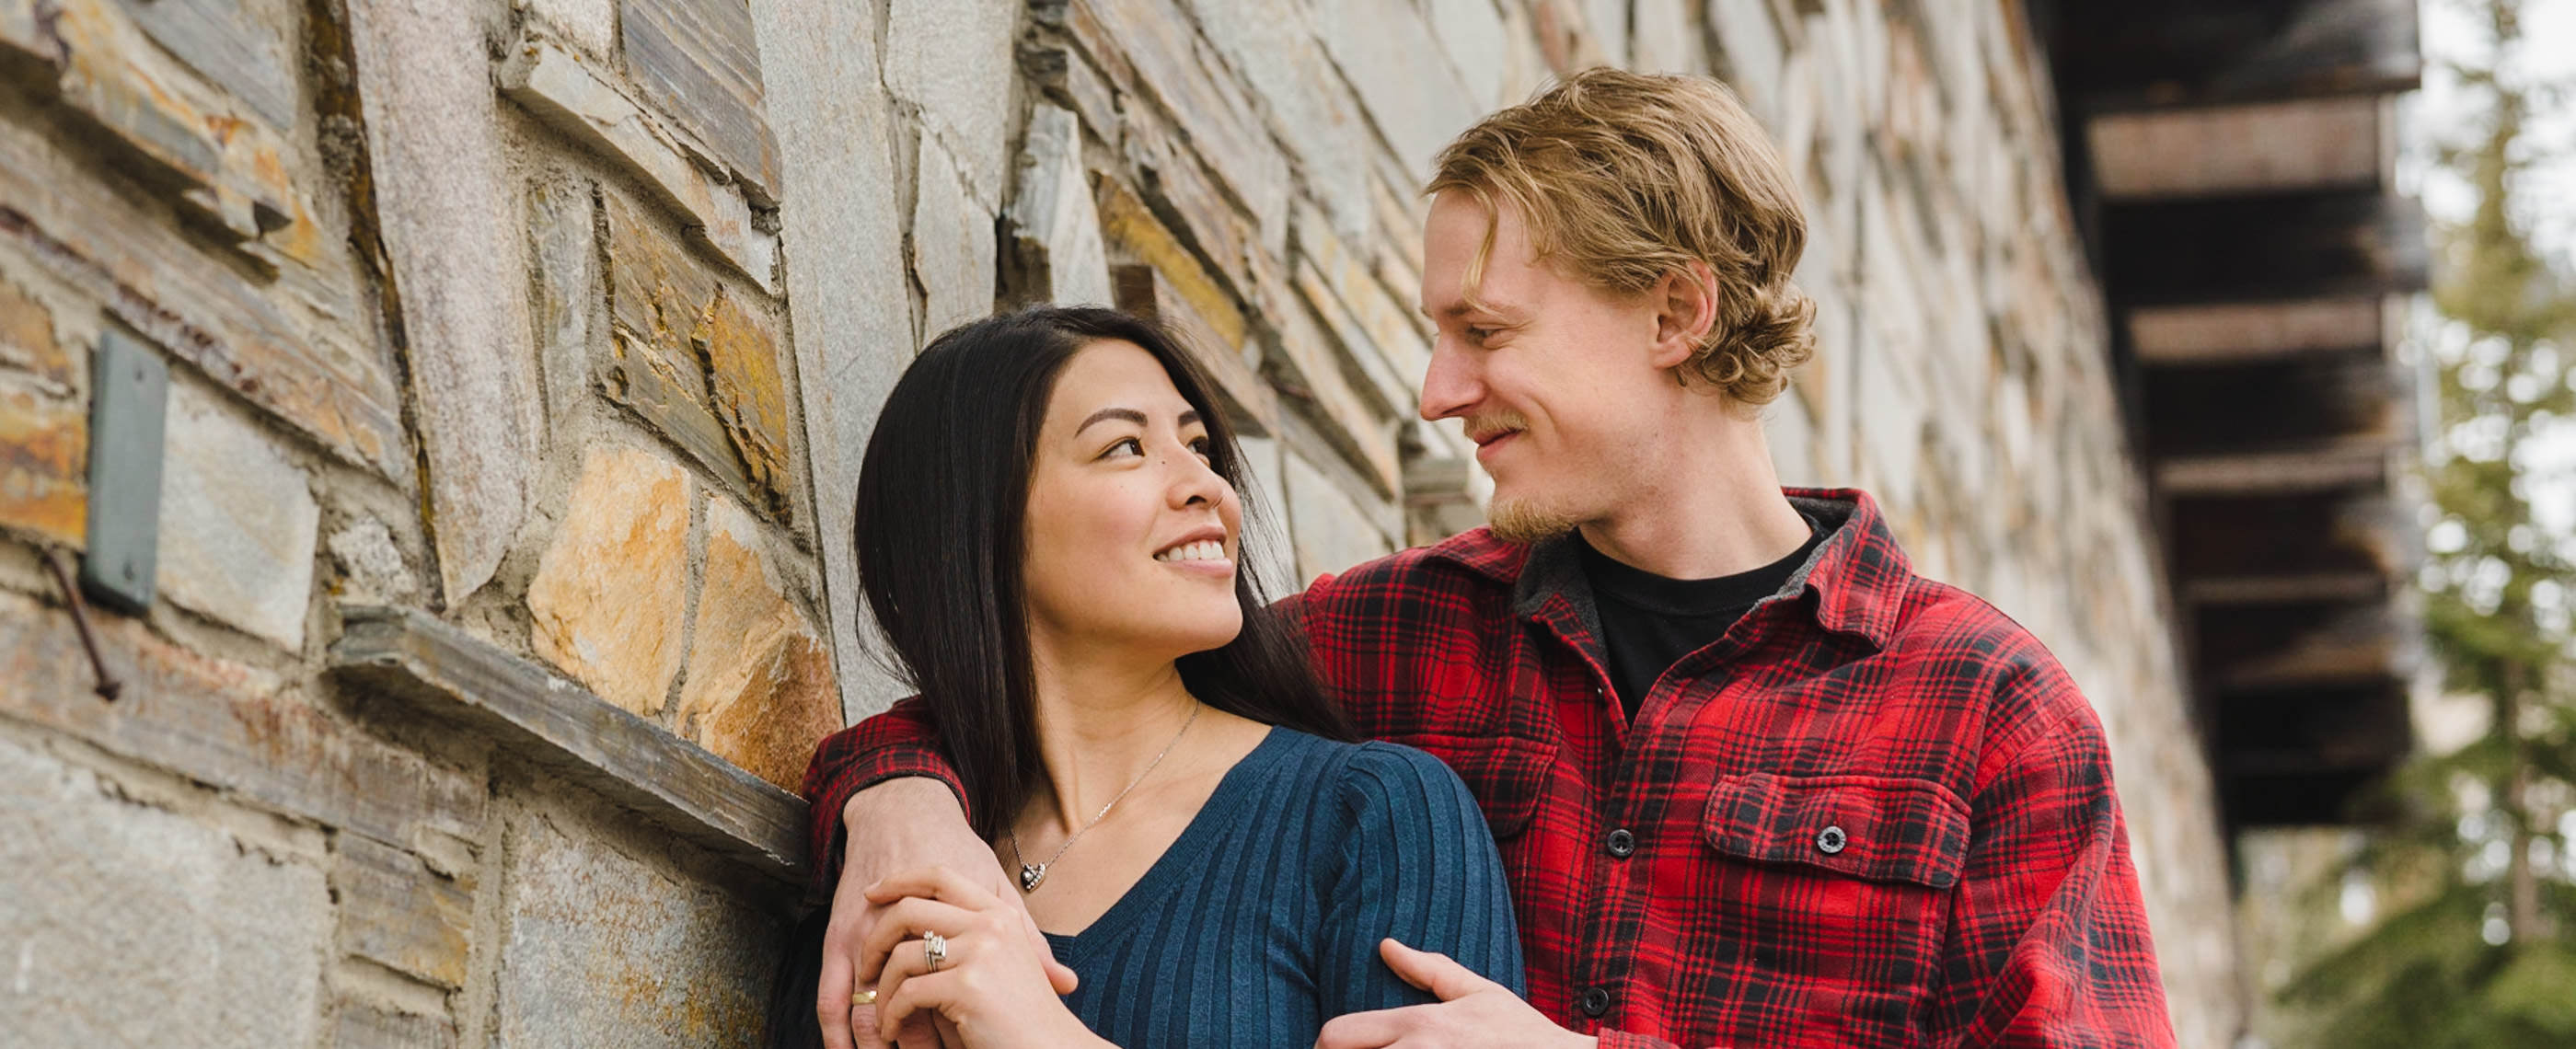 Engagement session at Solitude photo